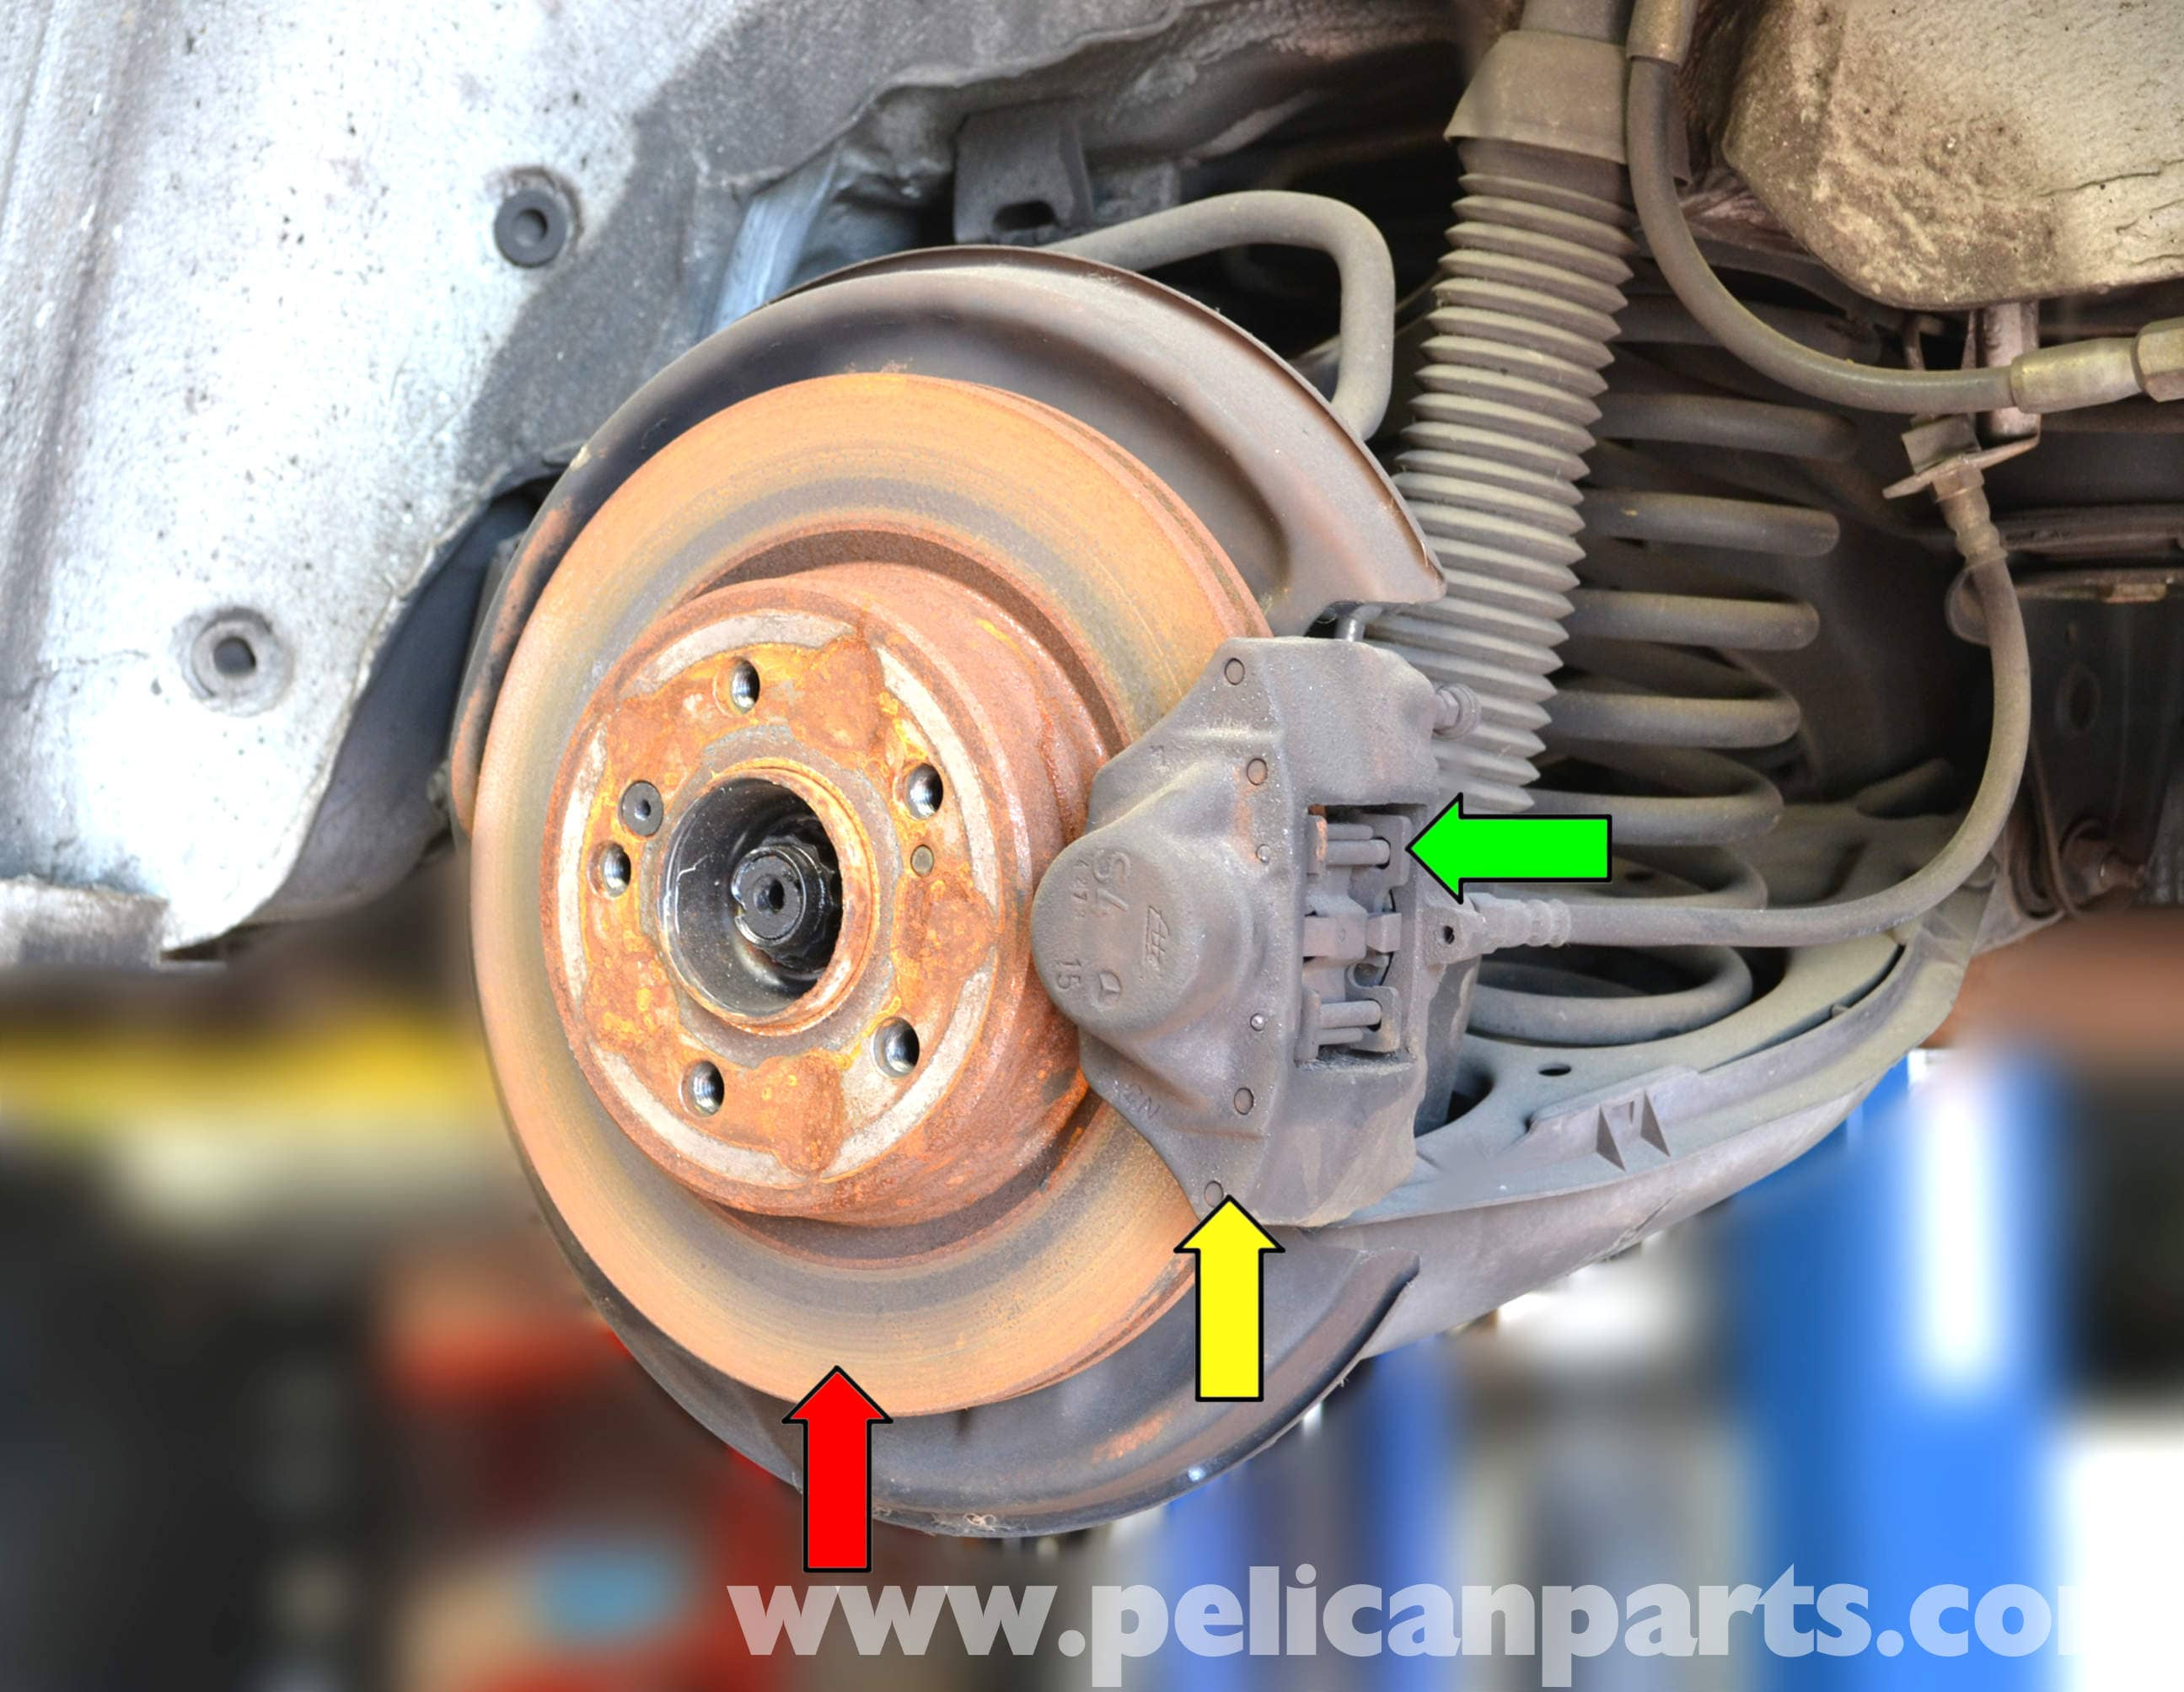 Mercedes benz w124 rear brake caliper replacement 1986 for Mercedes benz rotors replacement